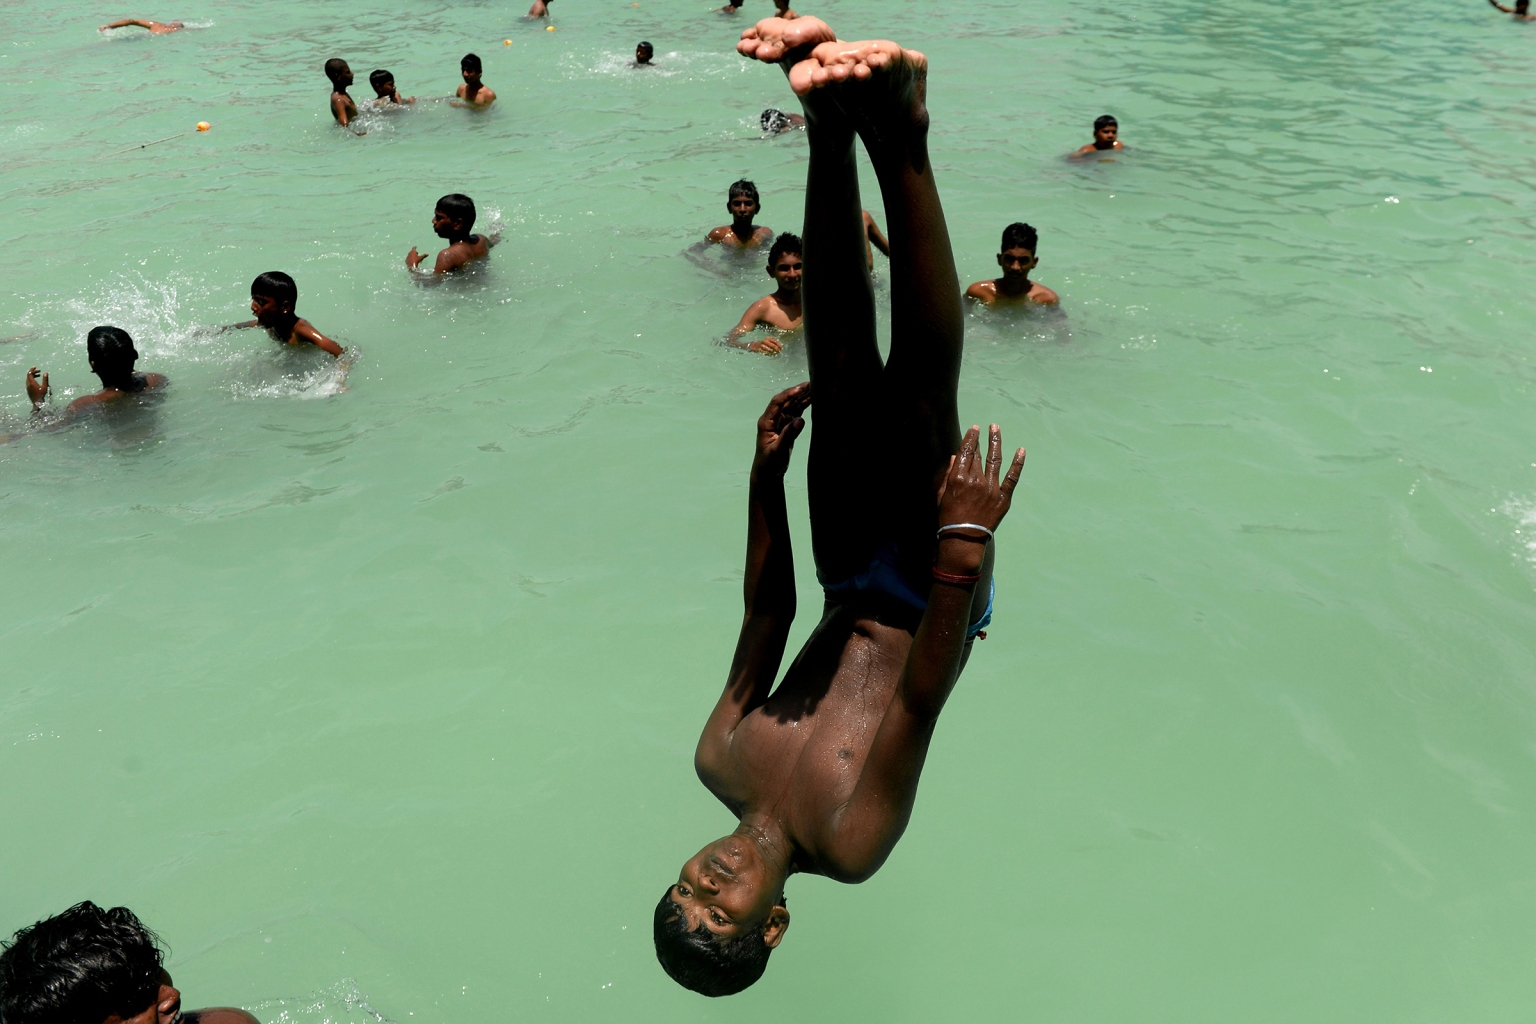 Indian youth play in a swimming pool during a hot day in Chennai on May 9. ARUN SANKAR/AFP/Getty Images